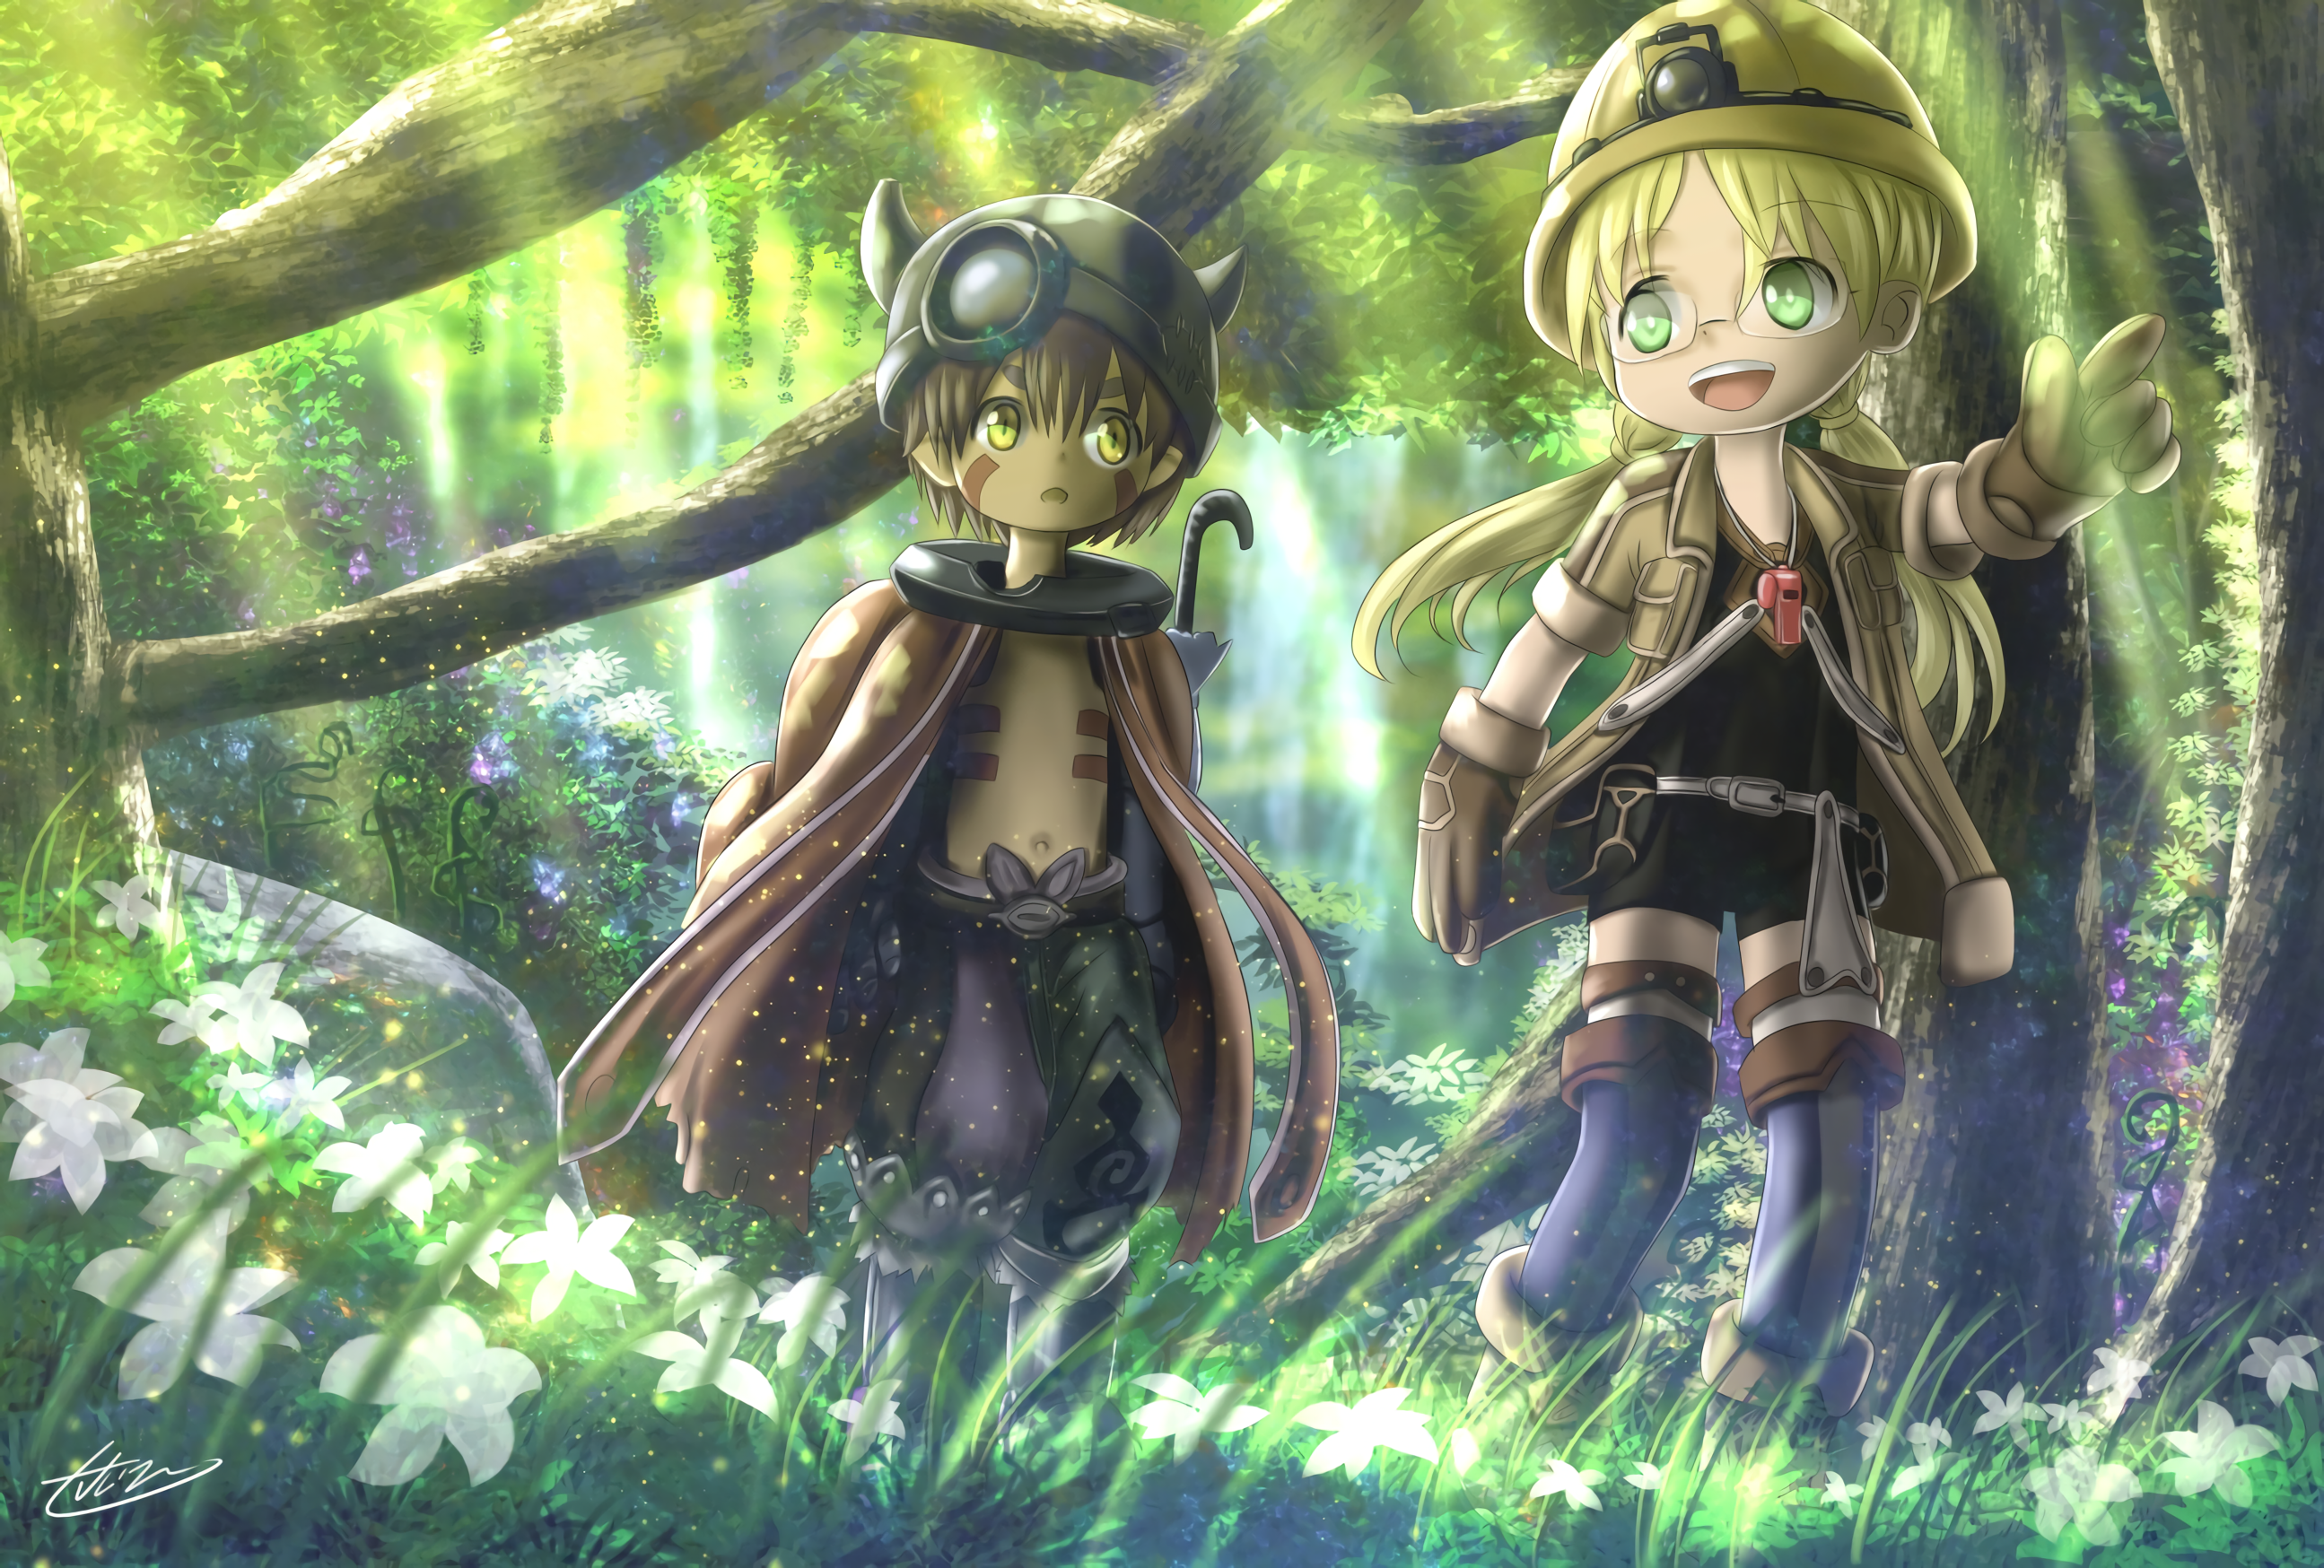 Made In Abyss Wallpapers Top Free Made In Abyss